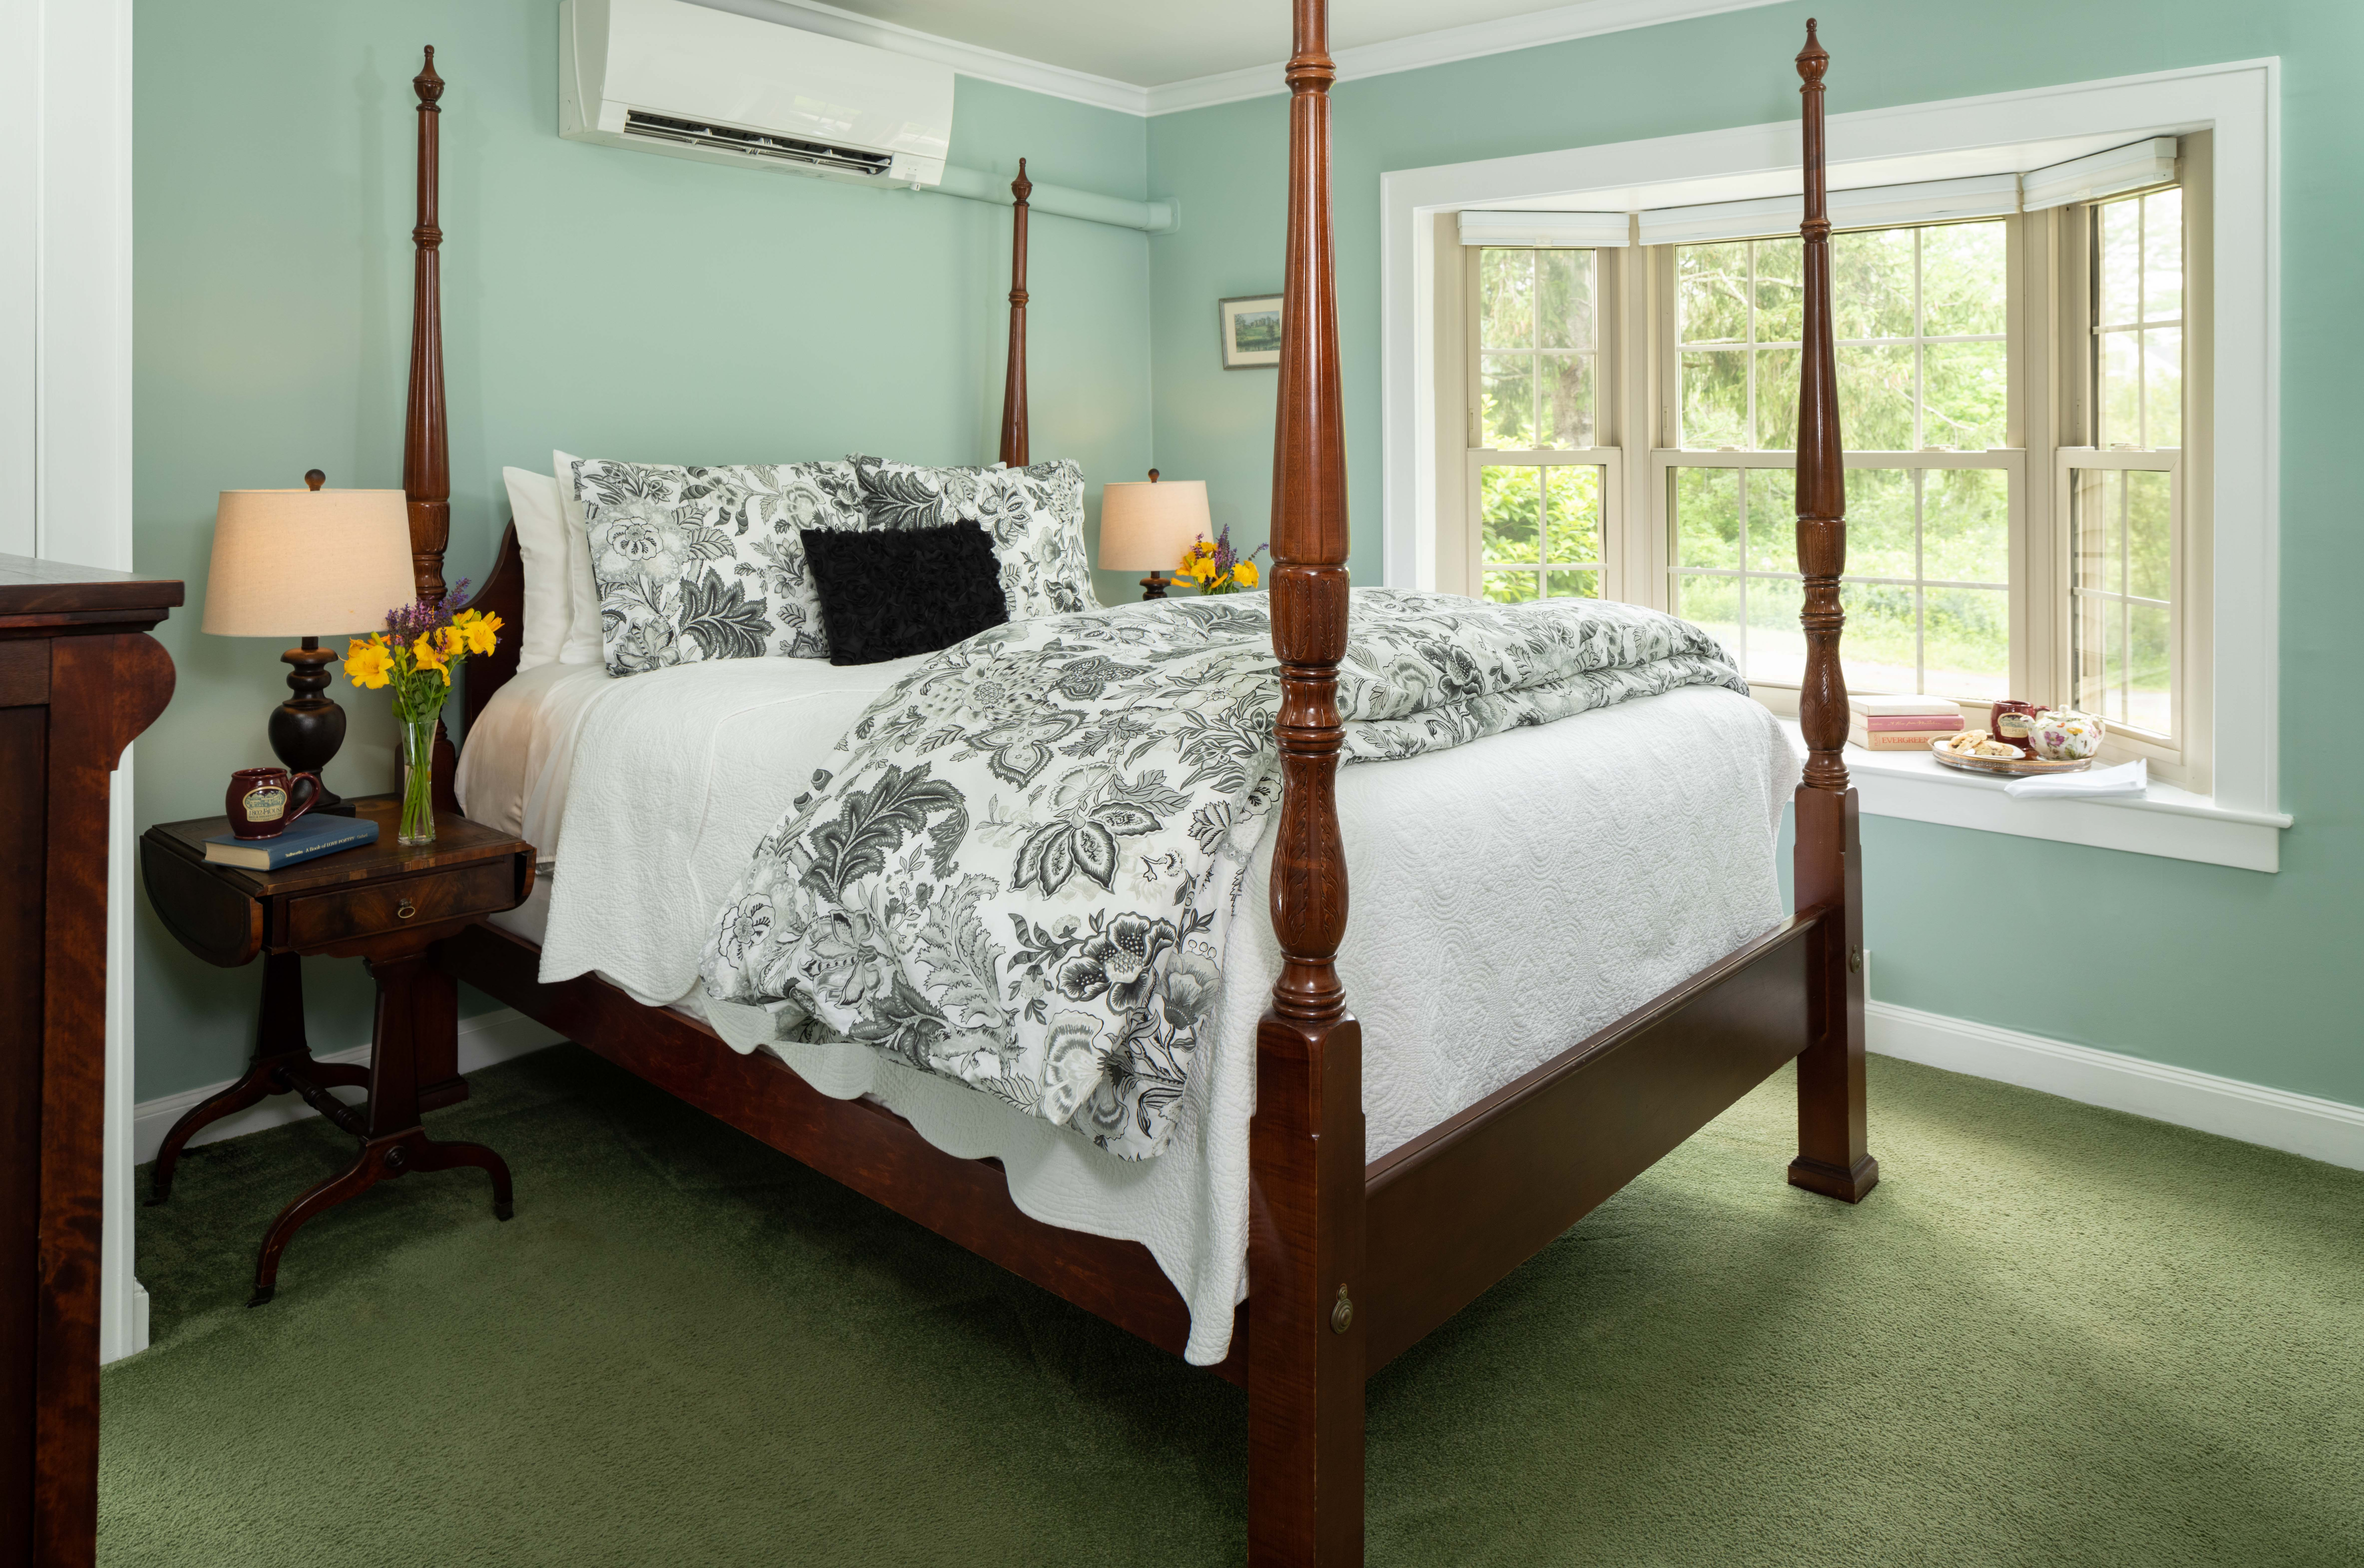 Bed with bay window and tea tray